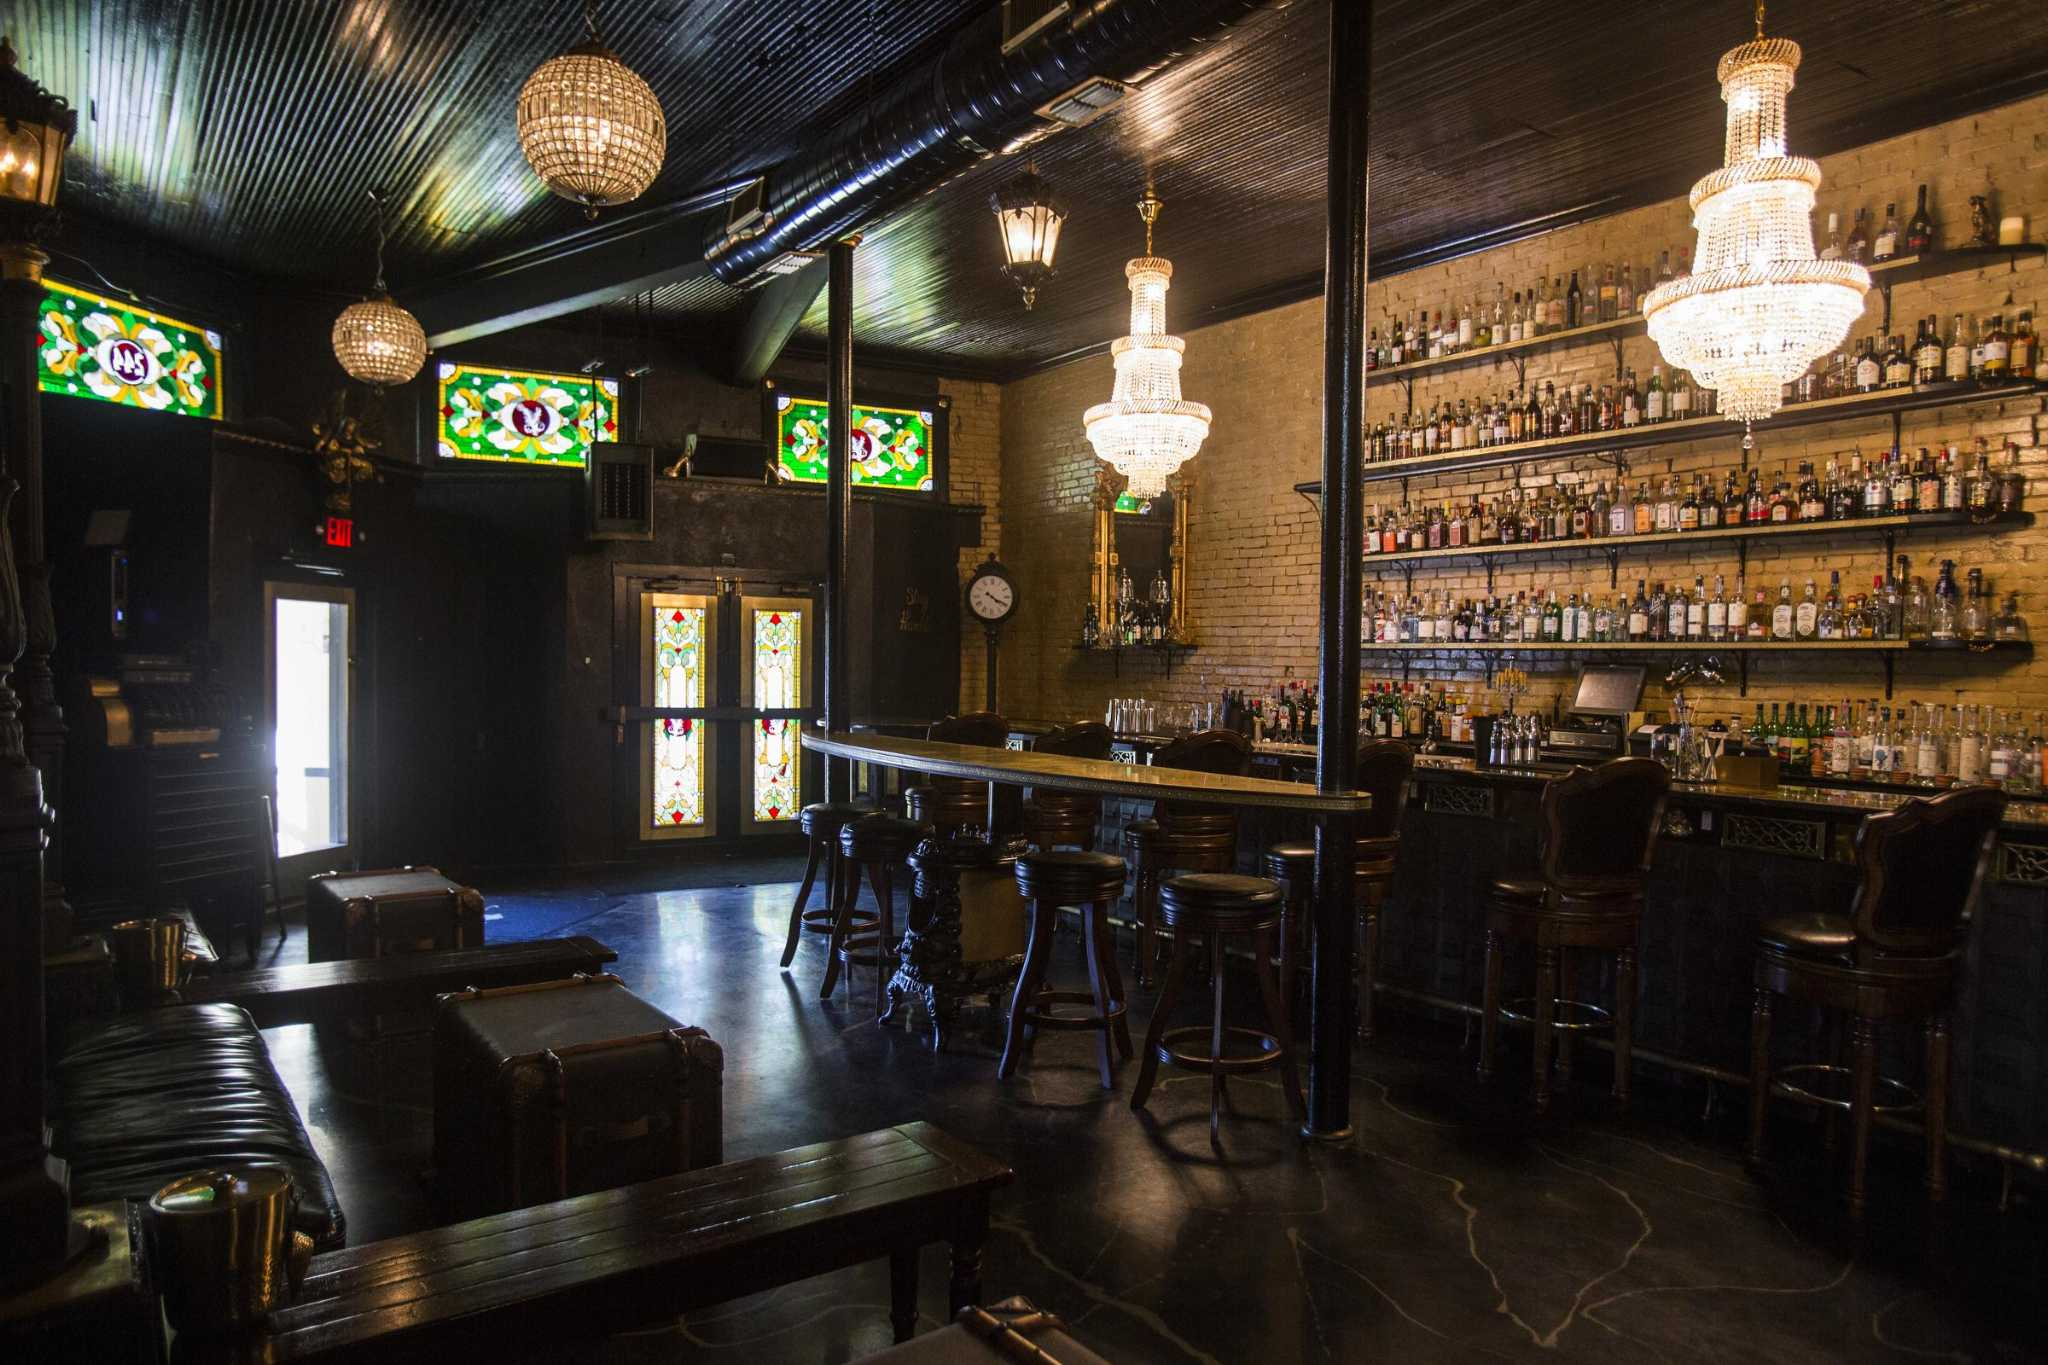 New High End Bar Vanguard Trading Co Opening Downtown In